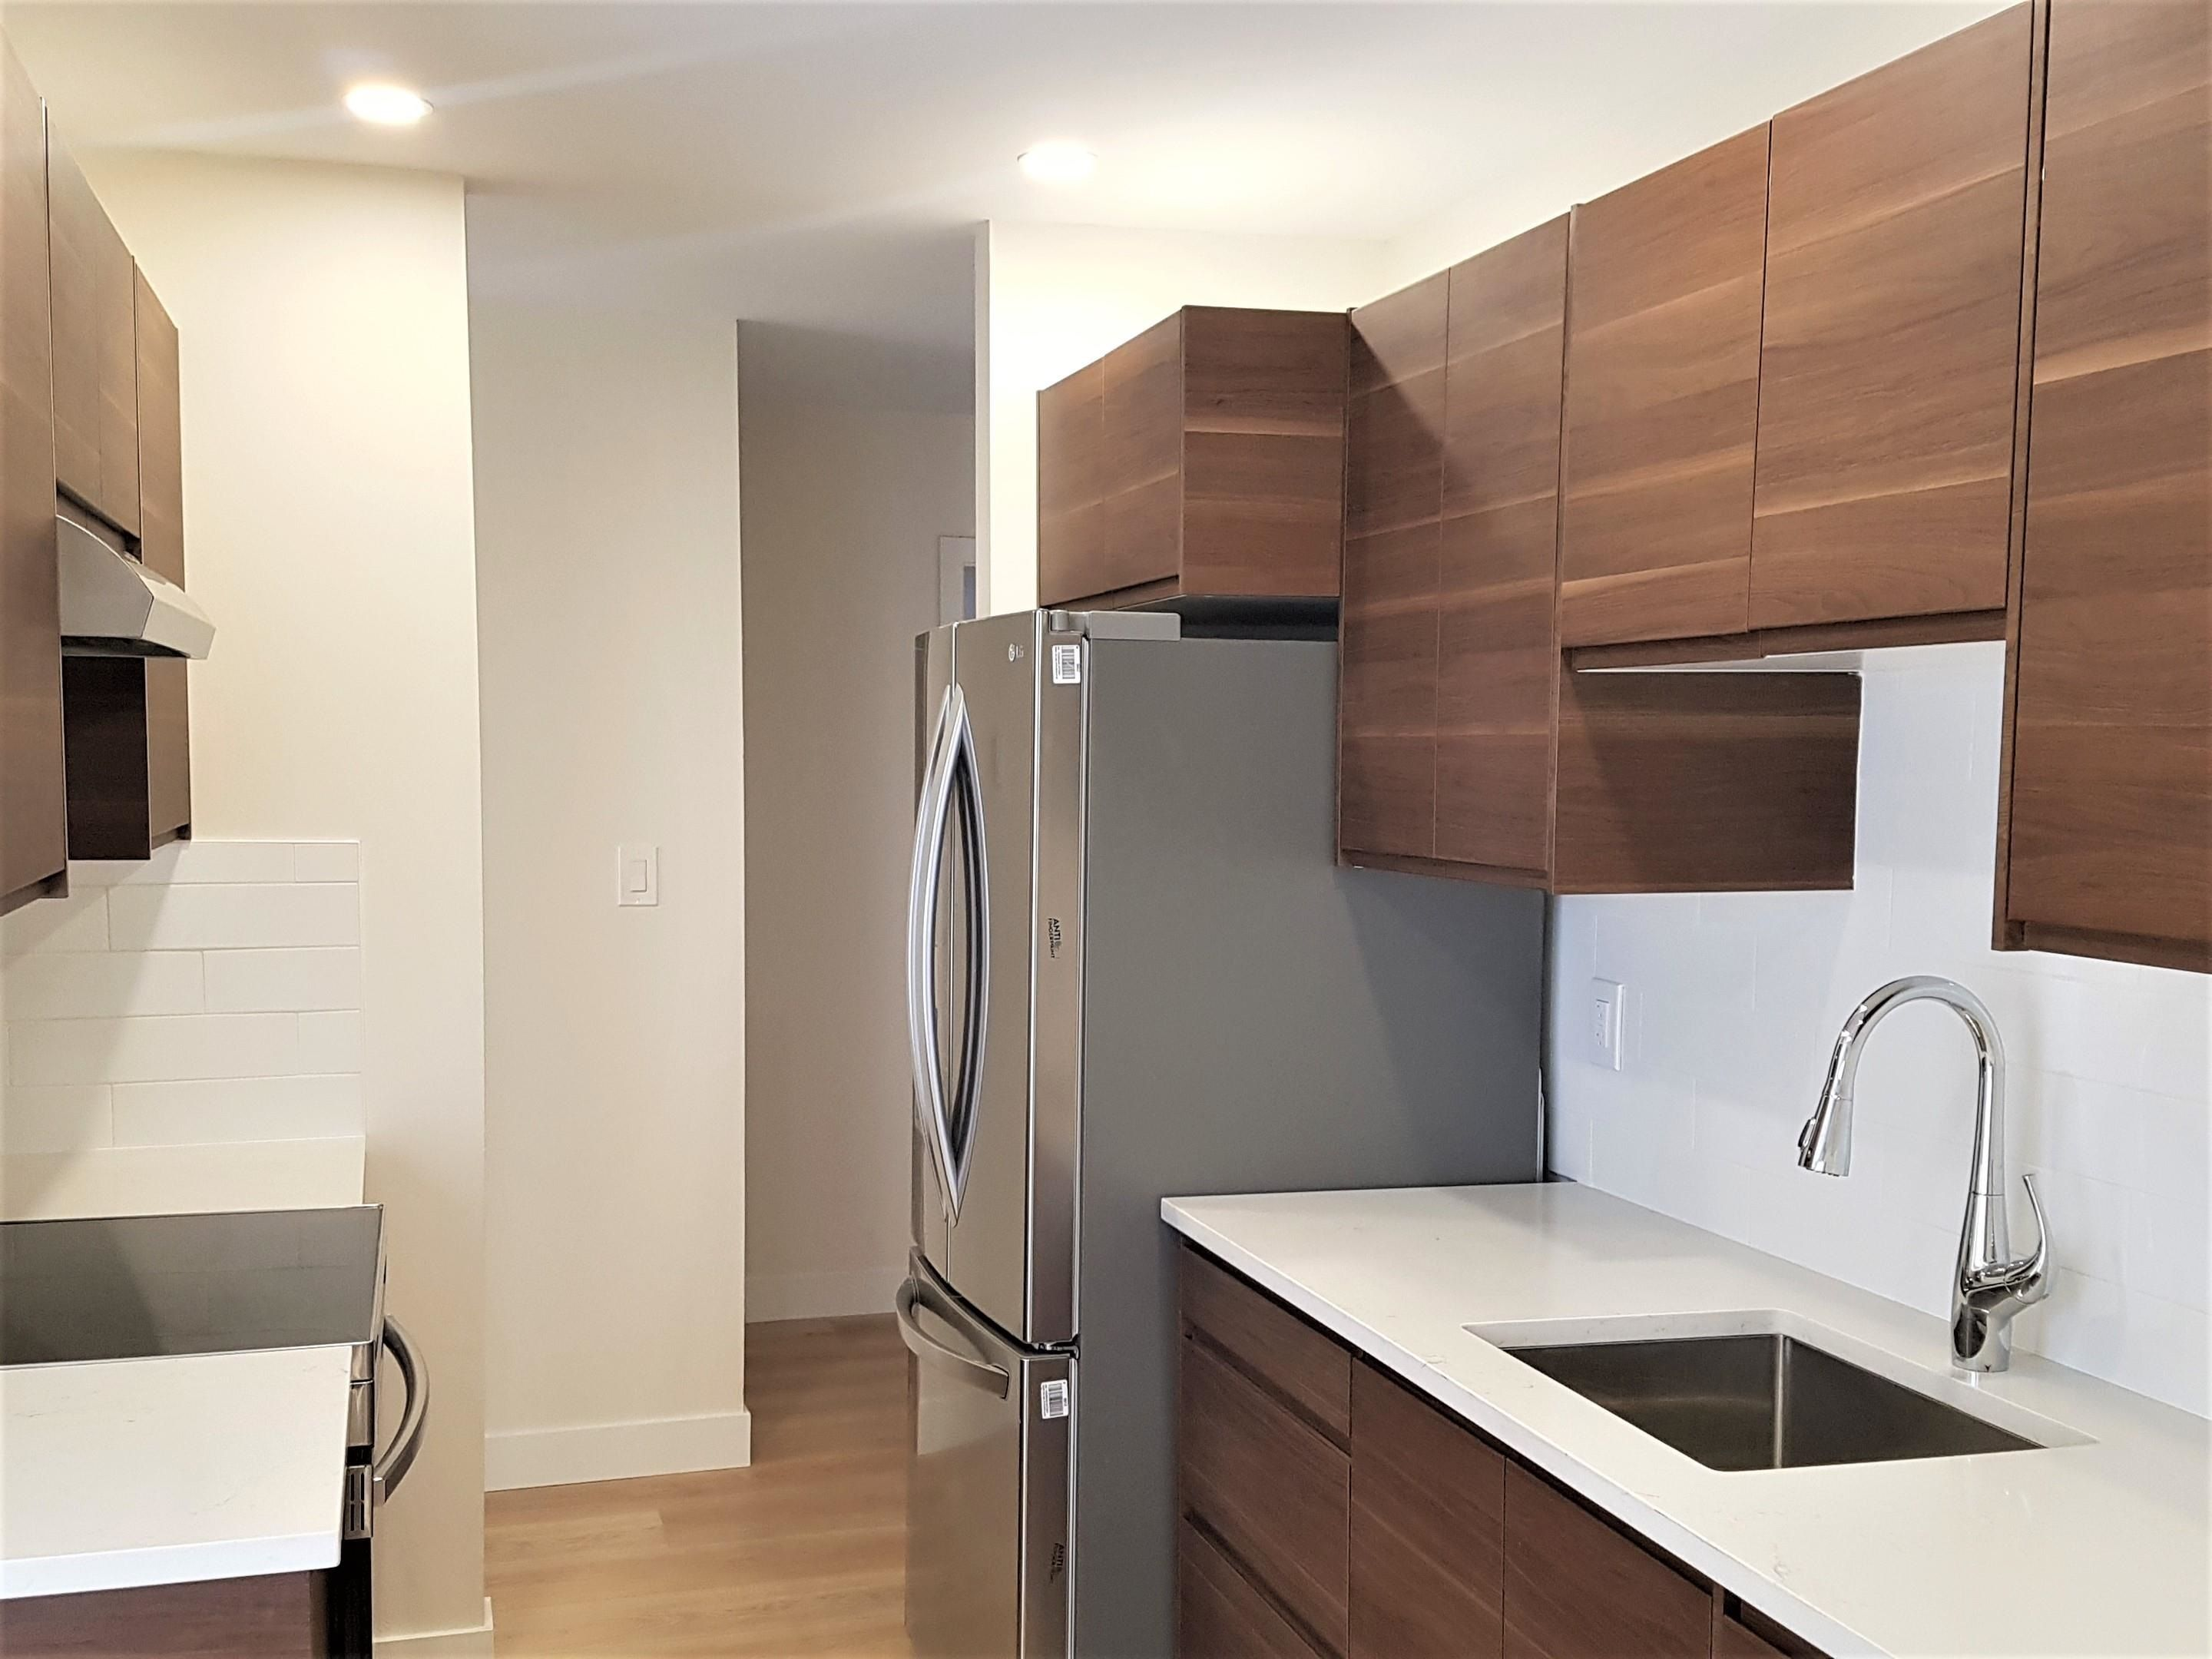 """Main Photo: 212 808 E 8TH Avenue in Vancouver: Mount Pleasant VE Condo for sale in """"Prince Albert Court"""" (Vancouver East)  : MLS®# R2612233"""